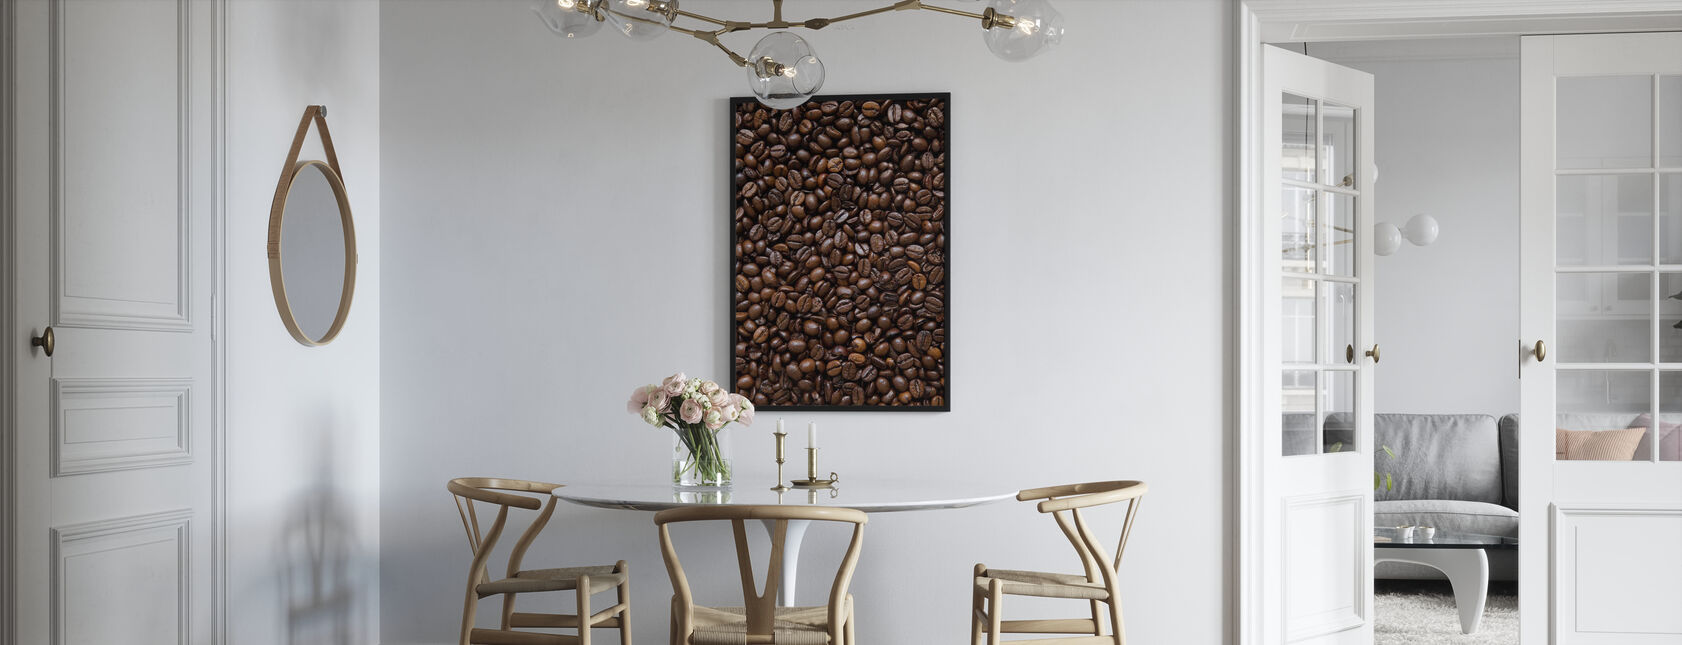 More Coffee Beans - Poster - Kitchen